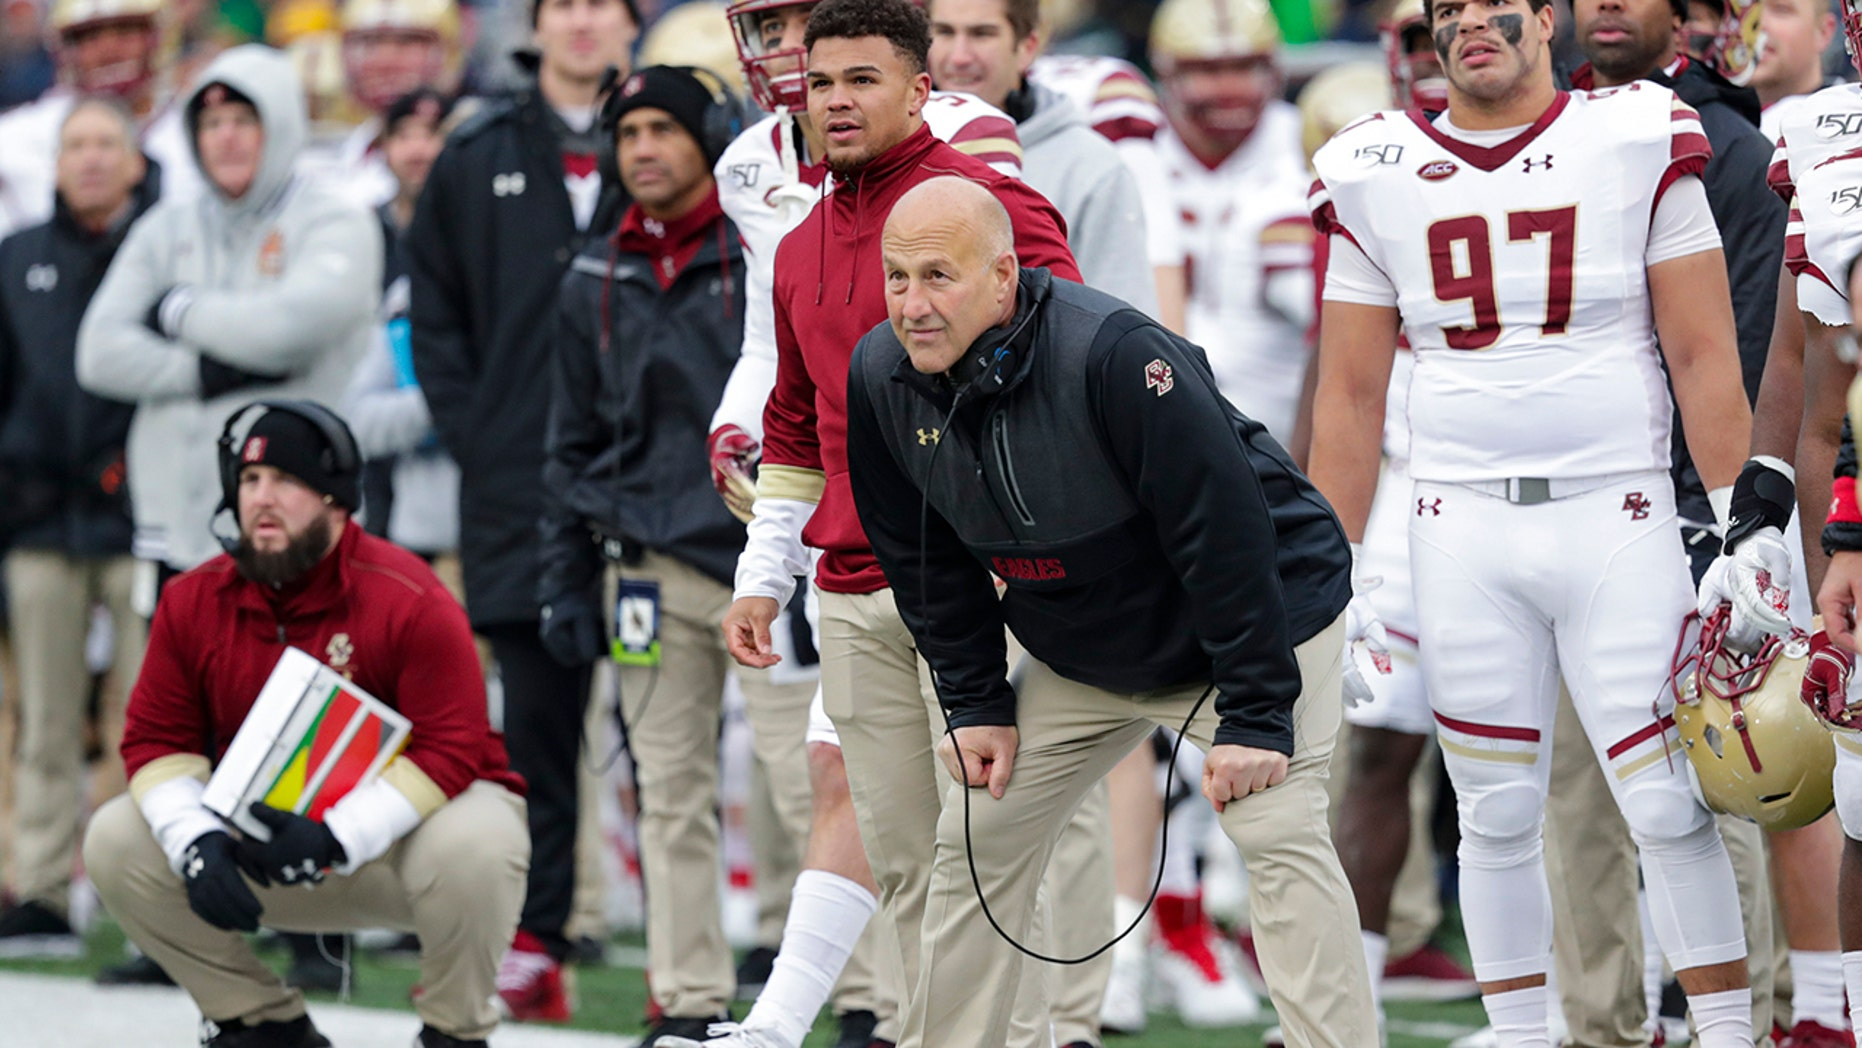 Boston College head coach Steve Addazio watches his team from the sideline as his team played against Notre Dame during the first half of an NCAA college football game in South Bend, Ind., Saturday, Nov. 23, 2019. Notre Dame defeated Boston College 40-7. (AP Photo/Michael Conroy)